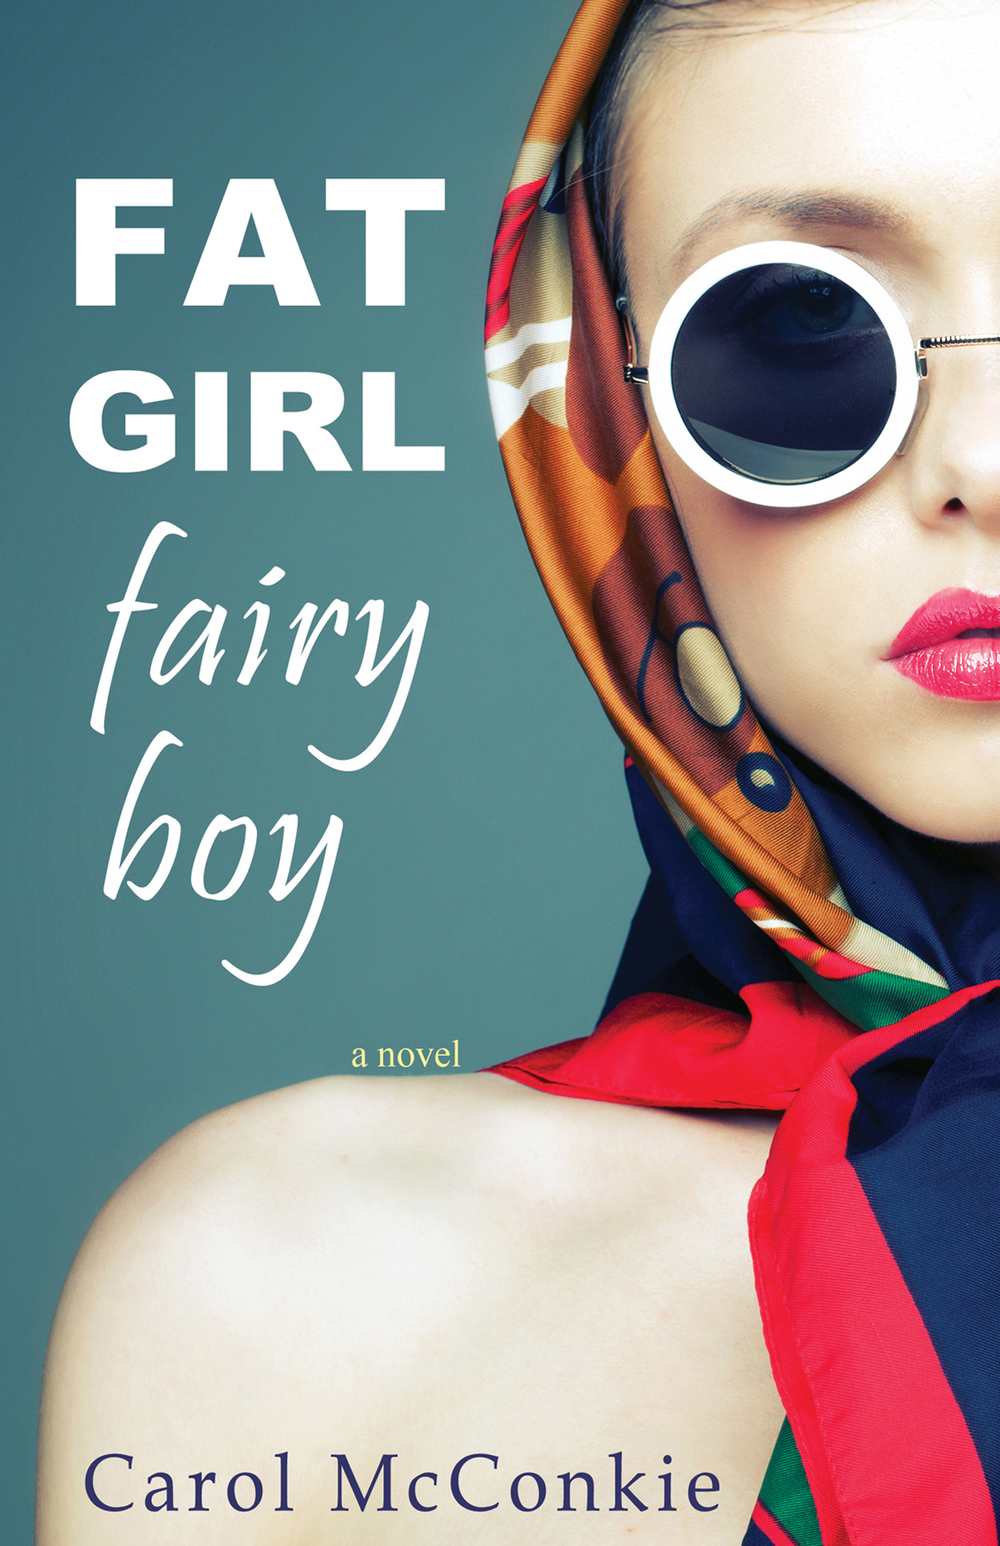 'Fat Girl Fairy Boy' by Carol McConkie